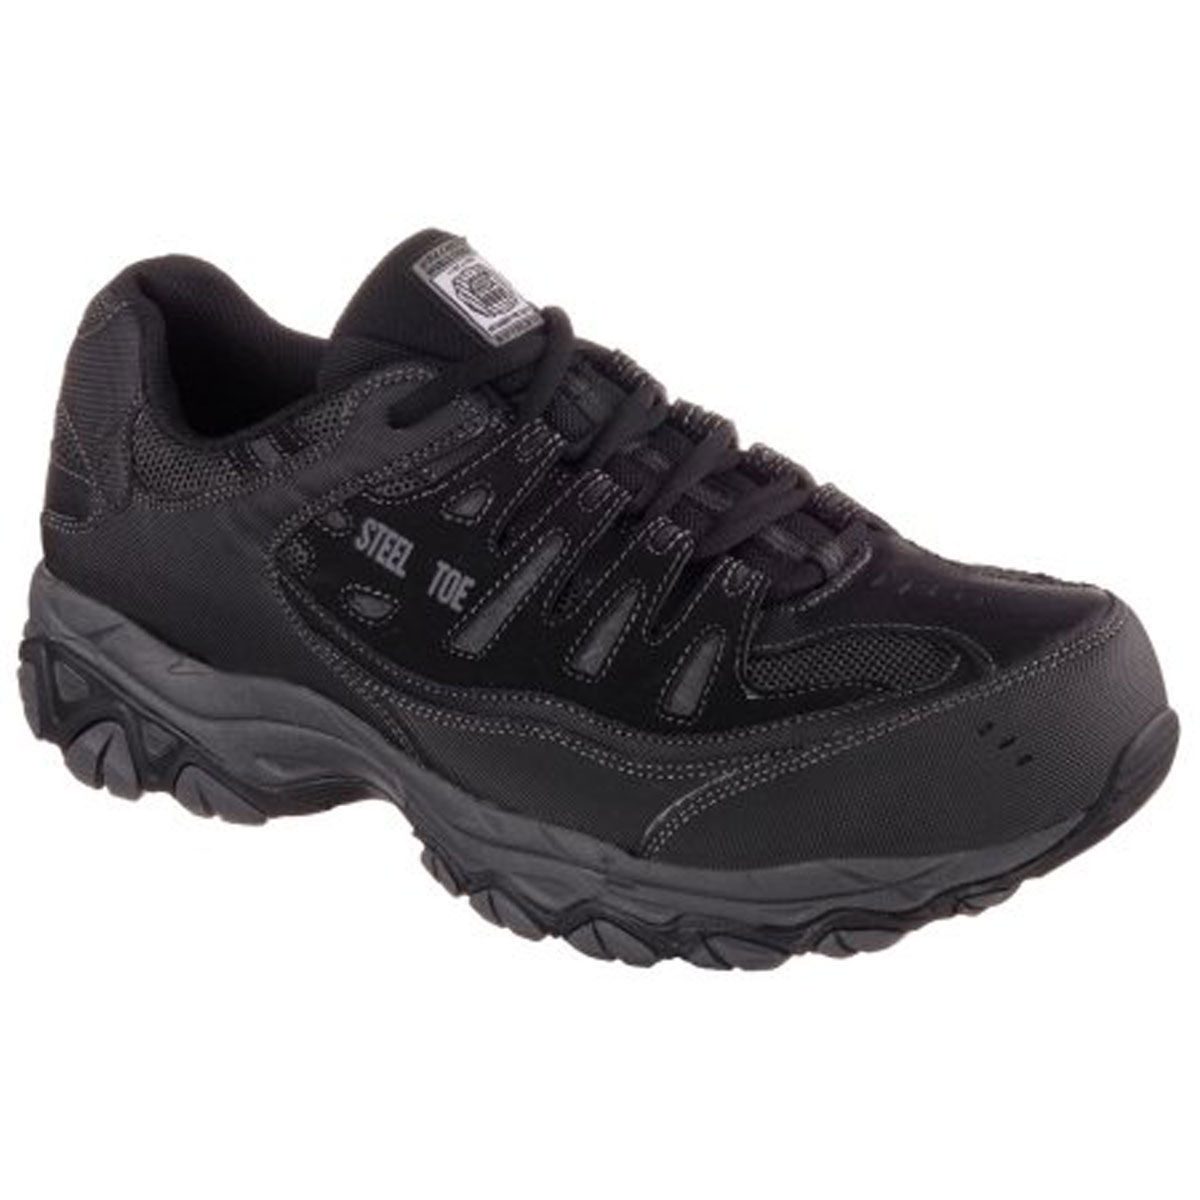 Skechers Crankton St Relaxed Fit Mens Wide Width Work Shoe